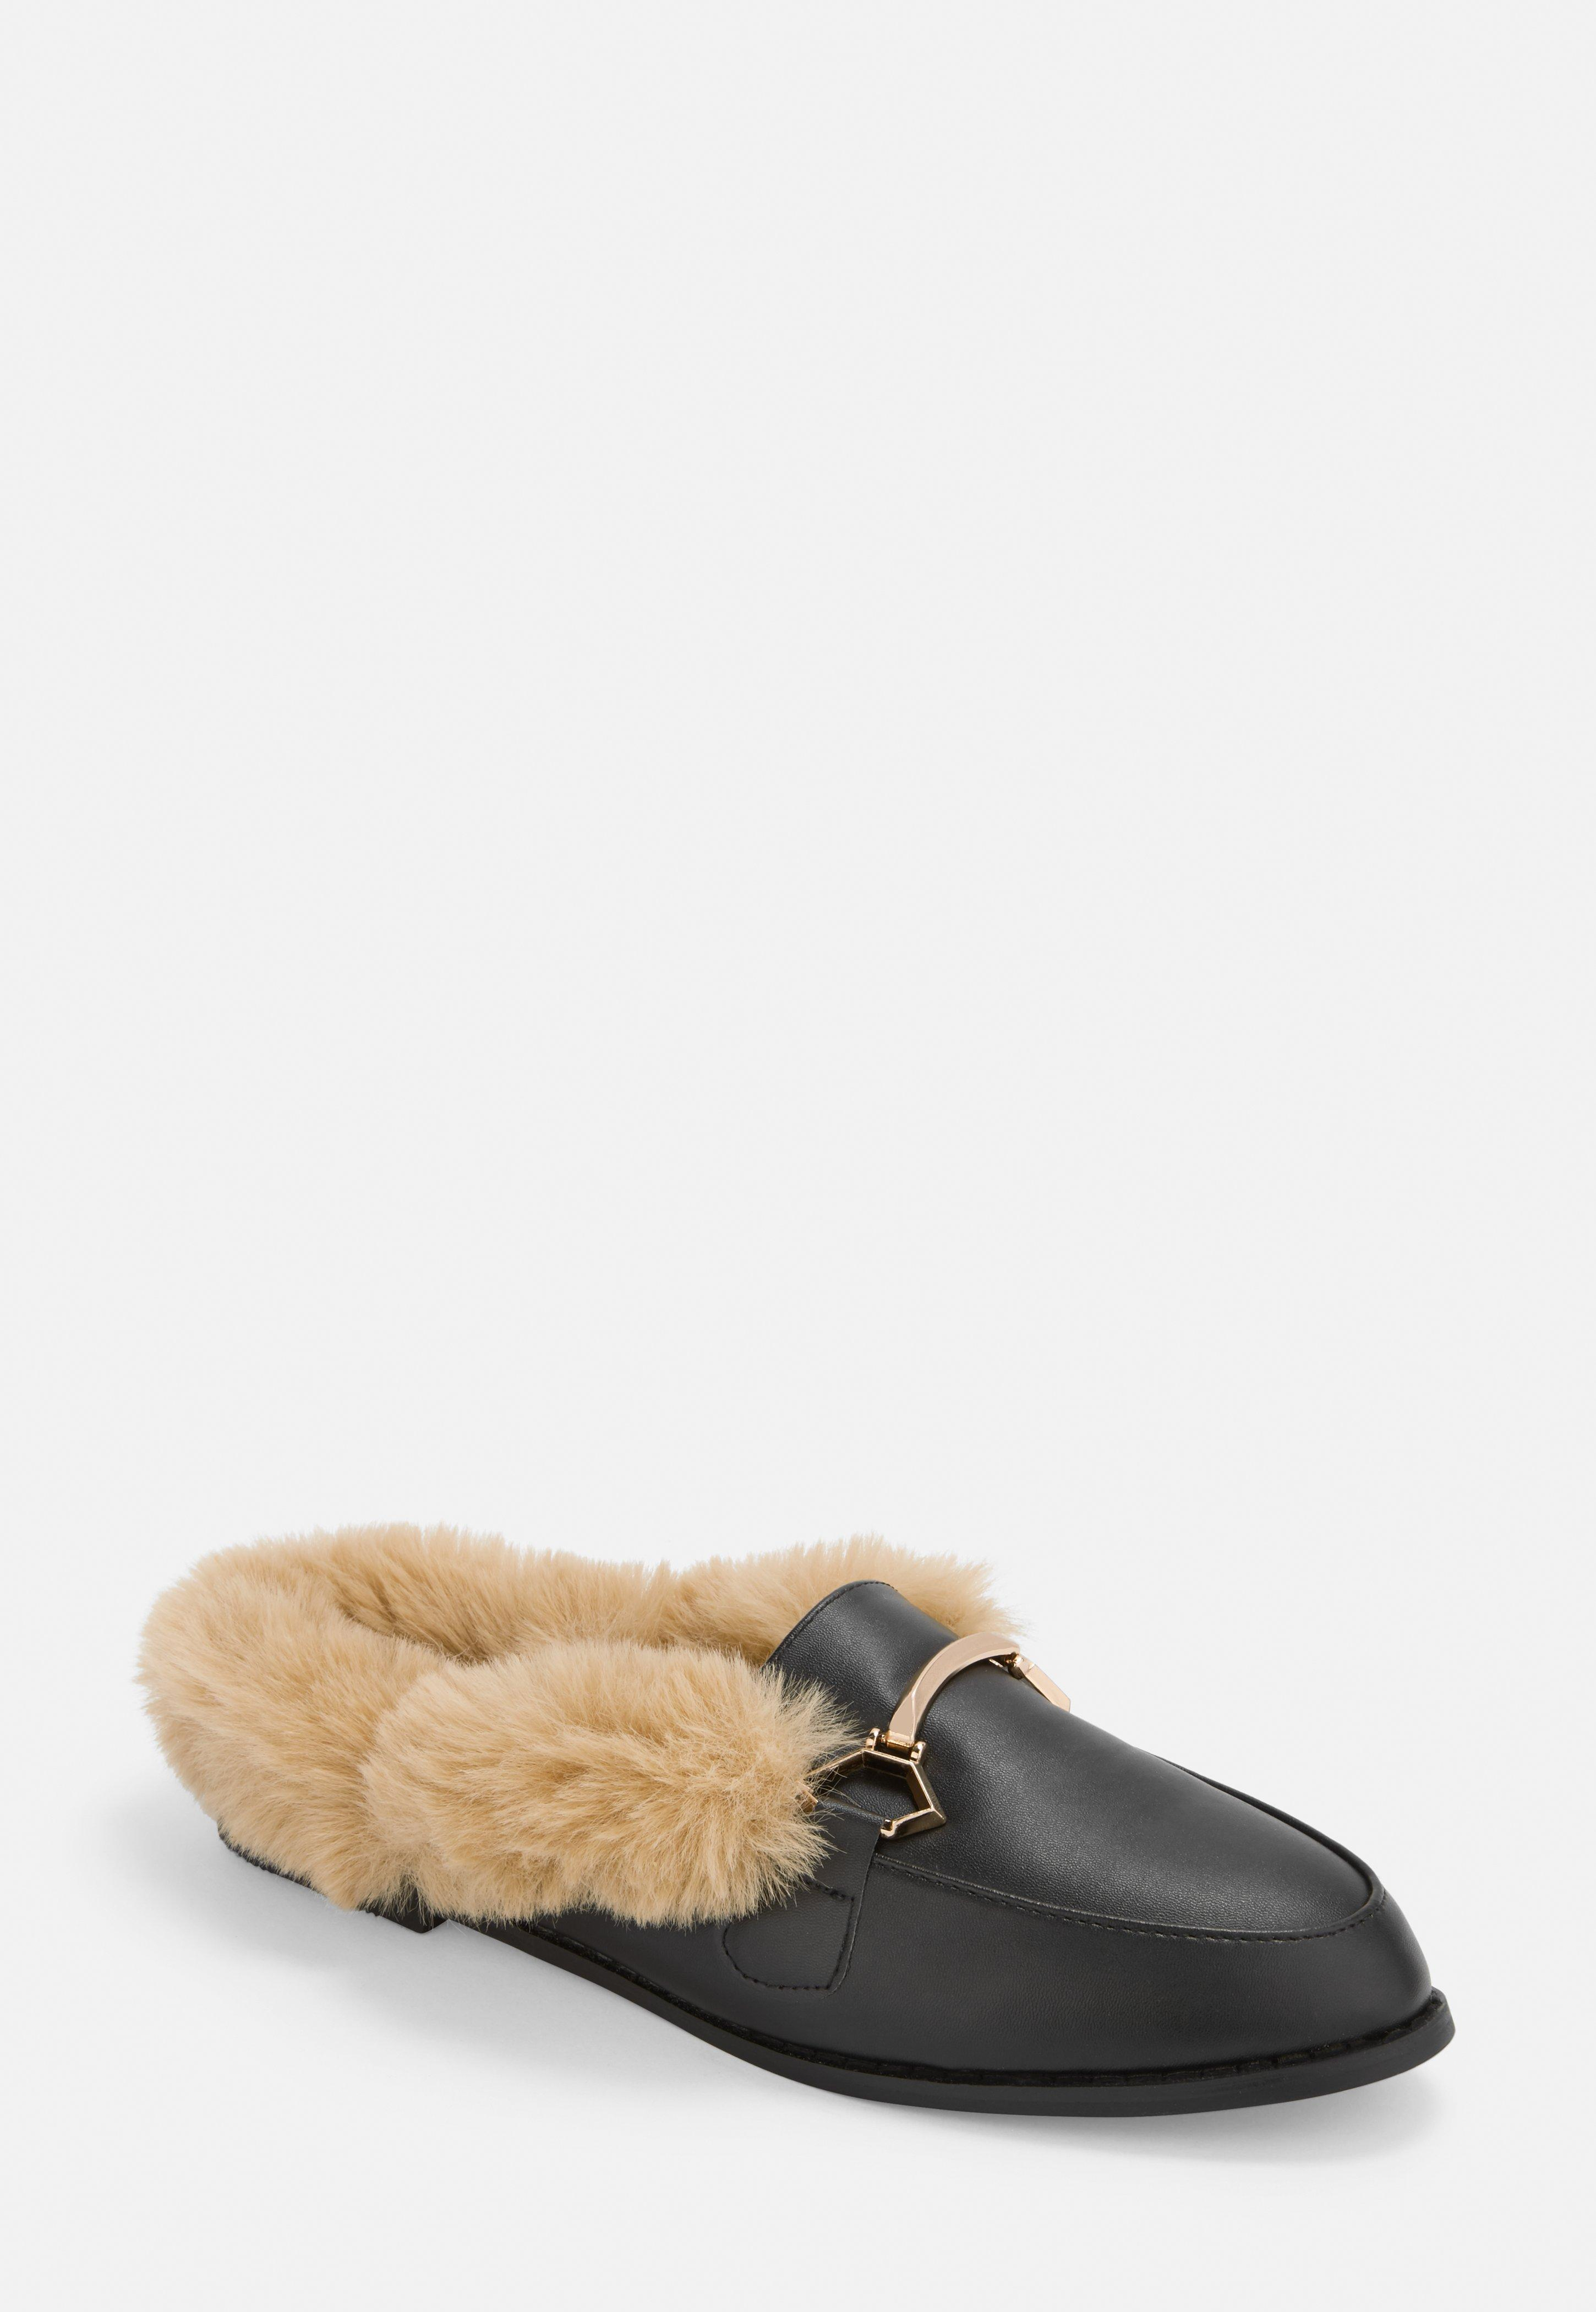 zwart mules with faux fur promo code